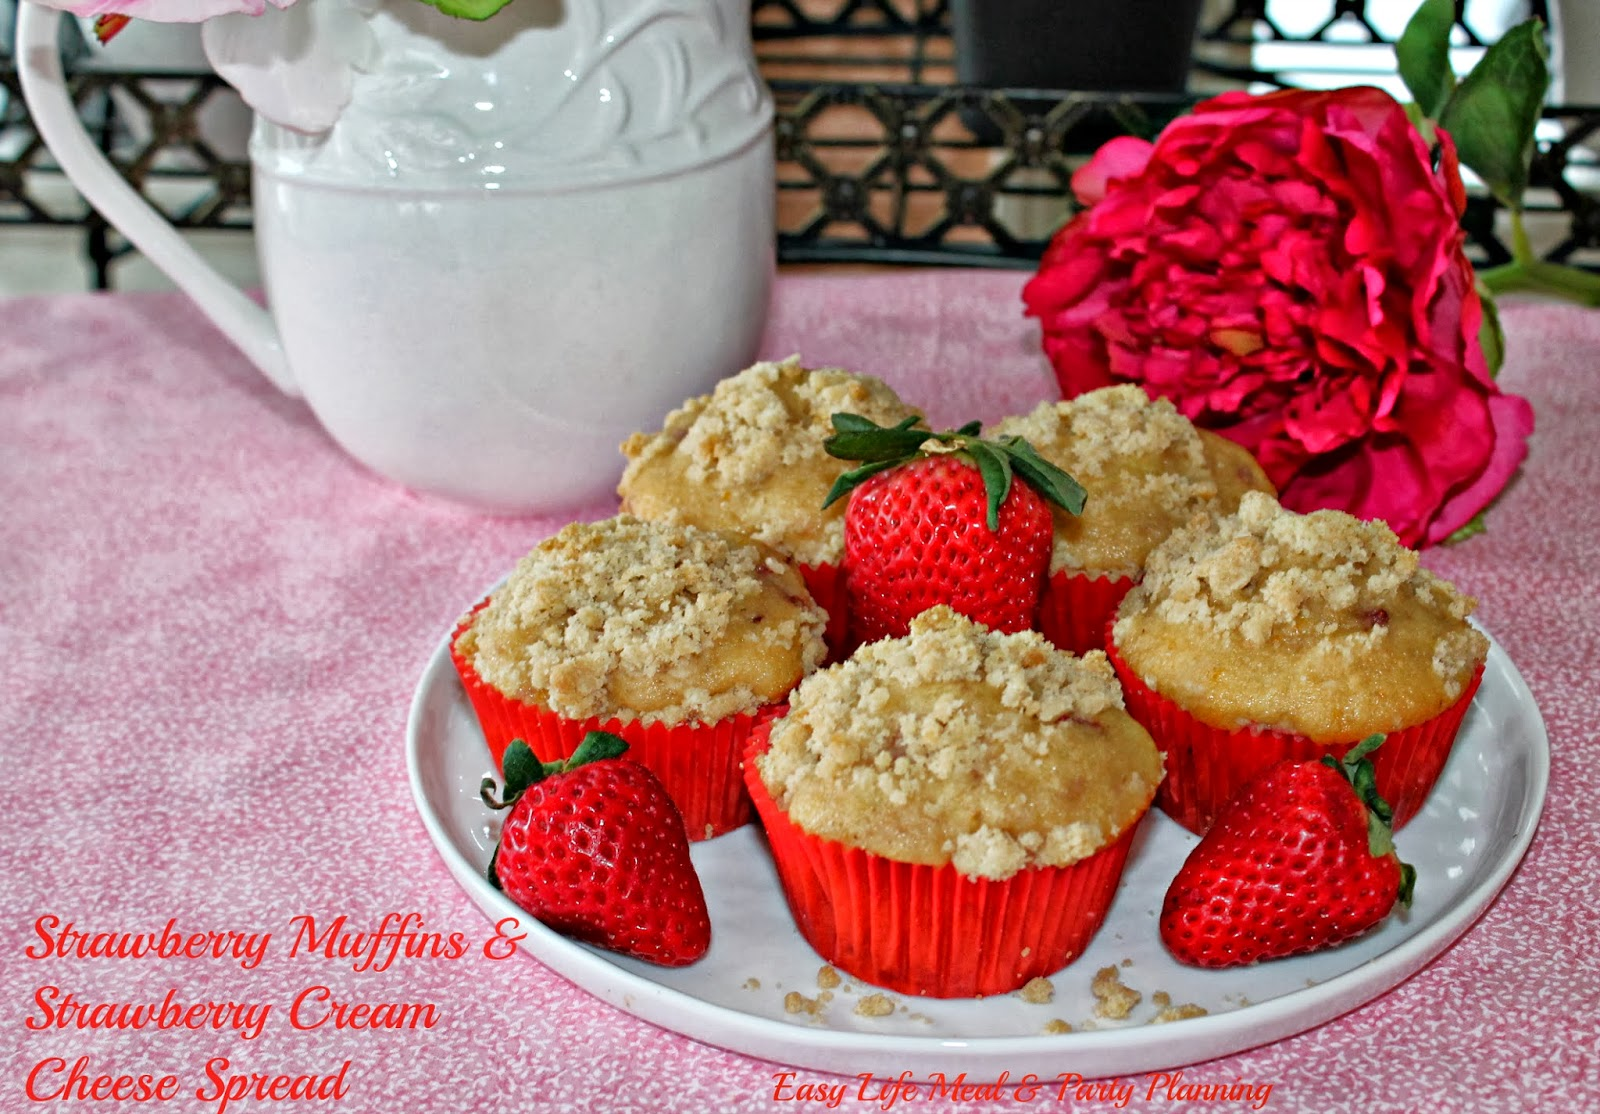 Strawberry Muffins - Easy Life Meal & Party Planning - Delicious served warm with homemade strawberry cream cheese spread